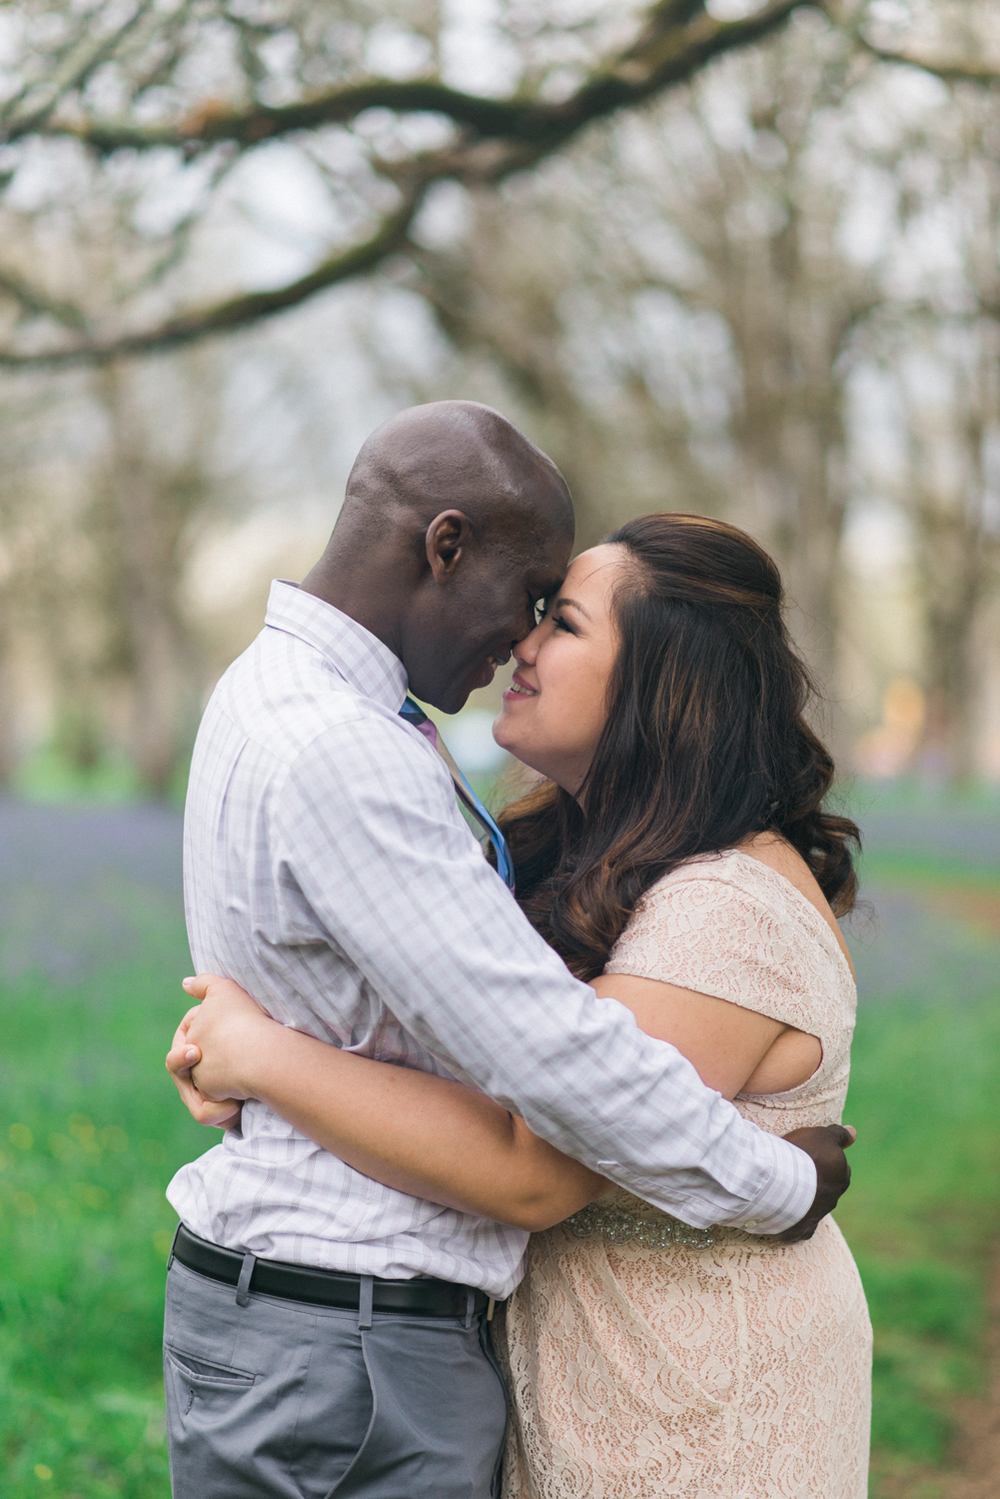 romantic-salem-engagement-photos-bush-park-shelley-marie-photo-22